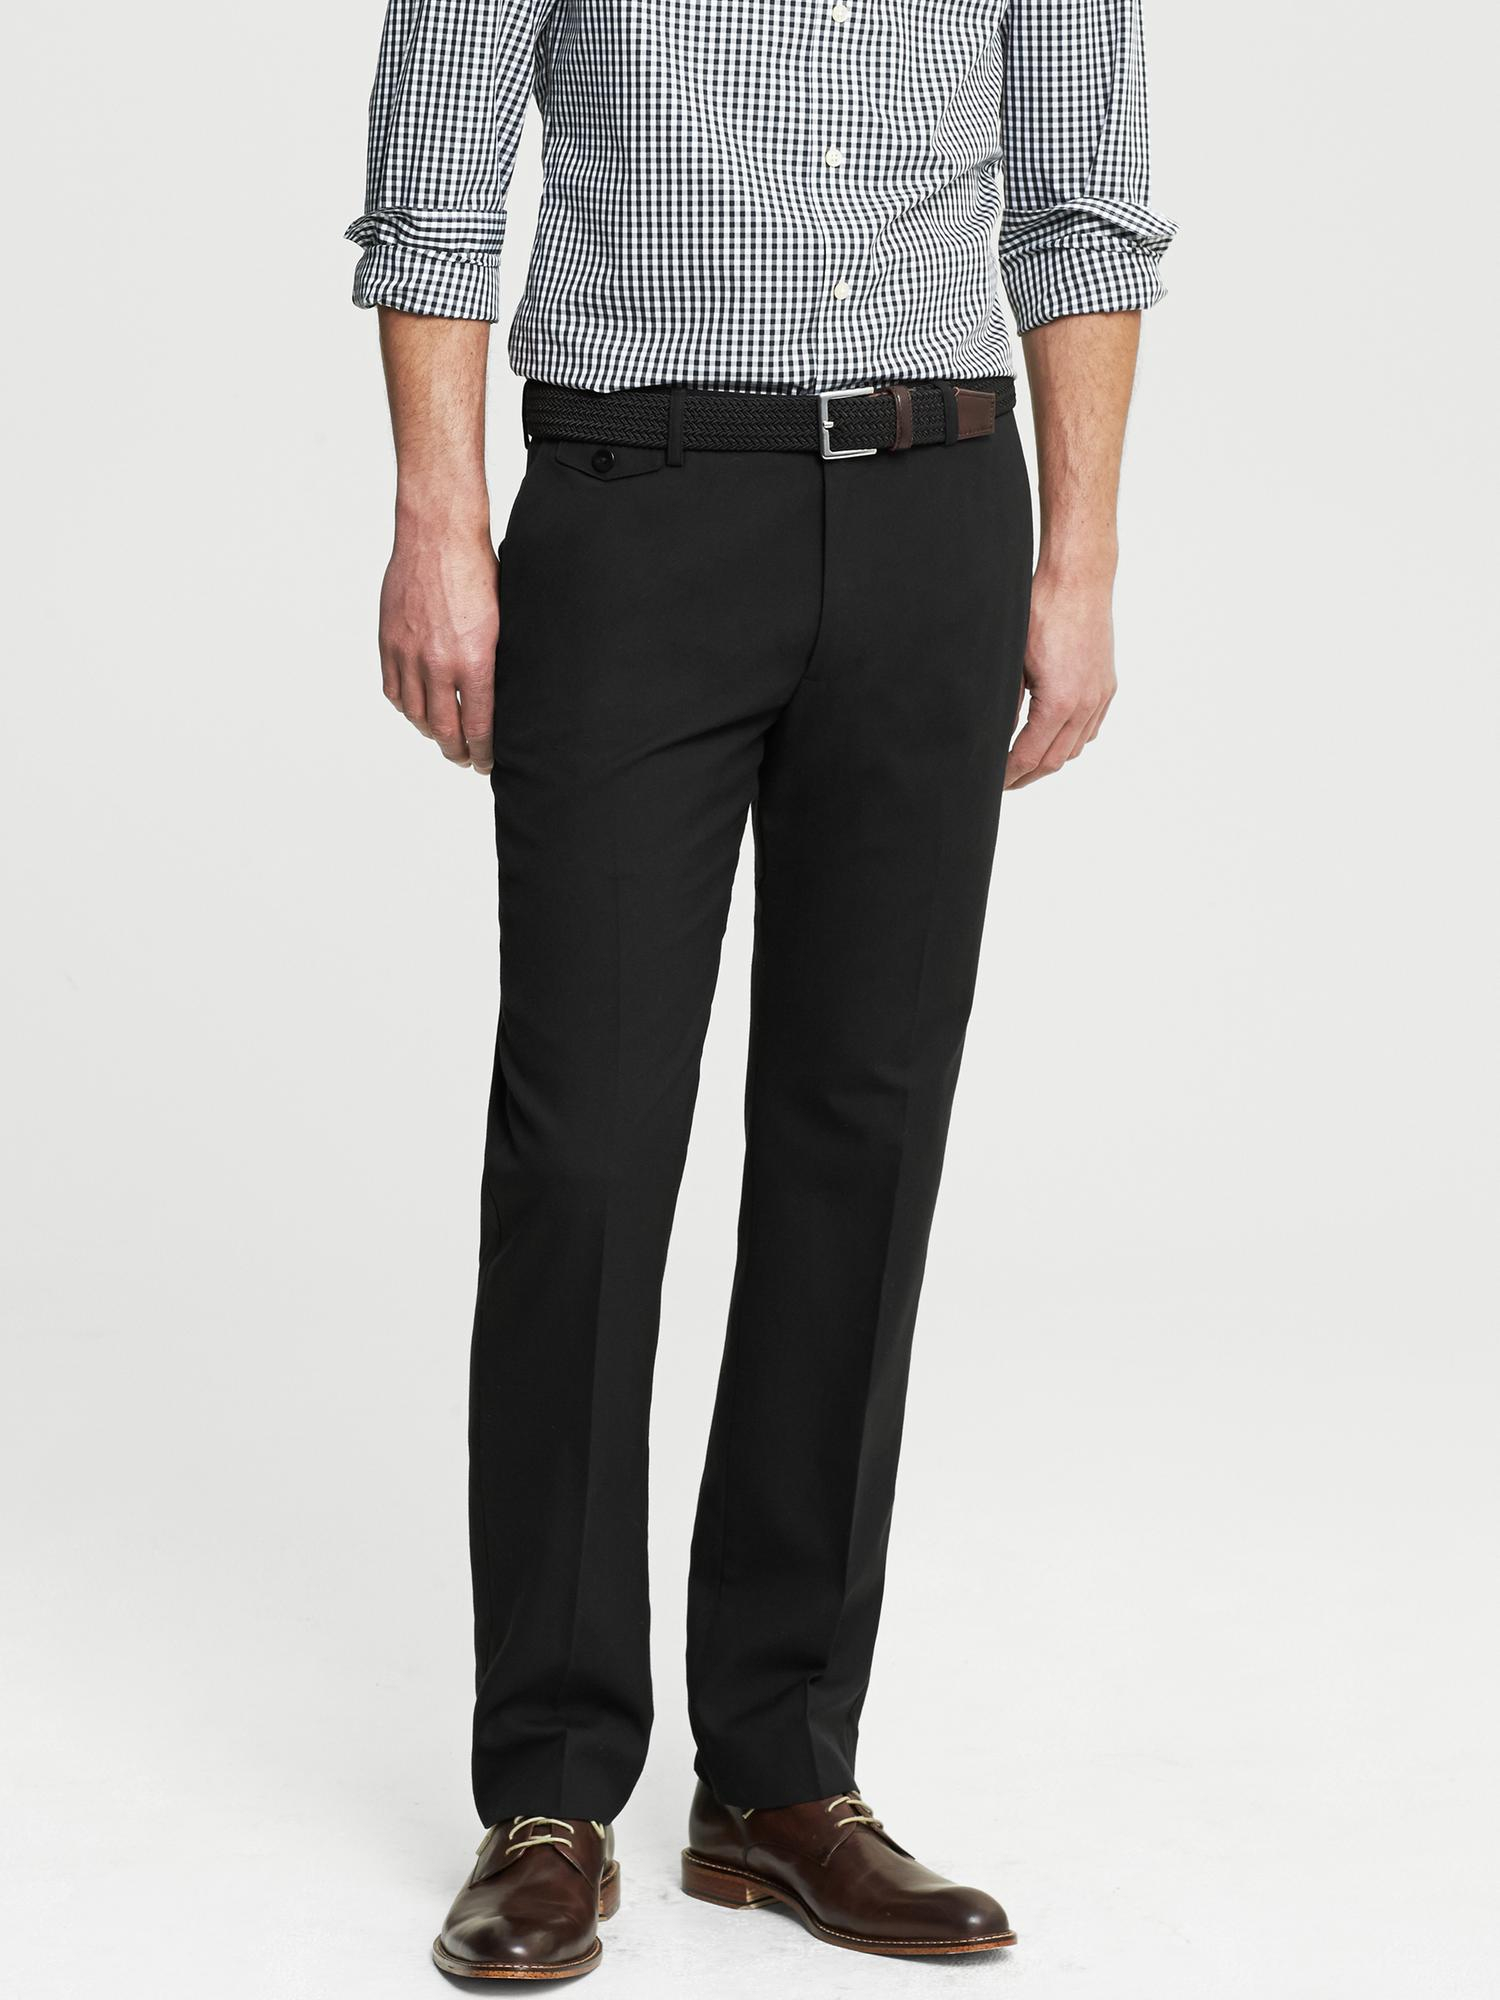 Shop slim fit stretch wool pants at Neiman Marcus, where you will find free shipping on the latest in fashion from top designers.